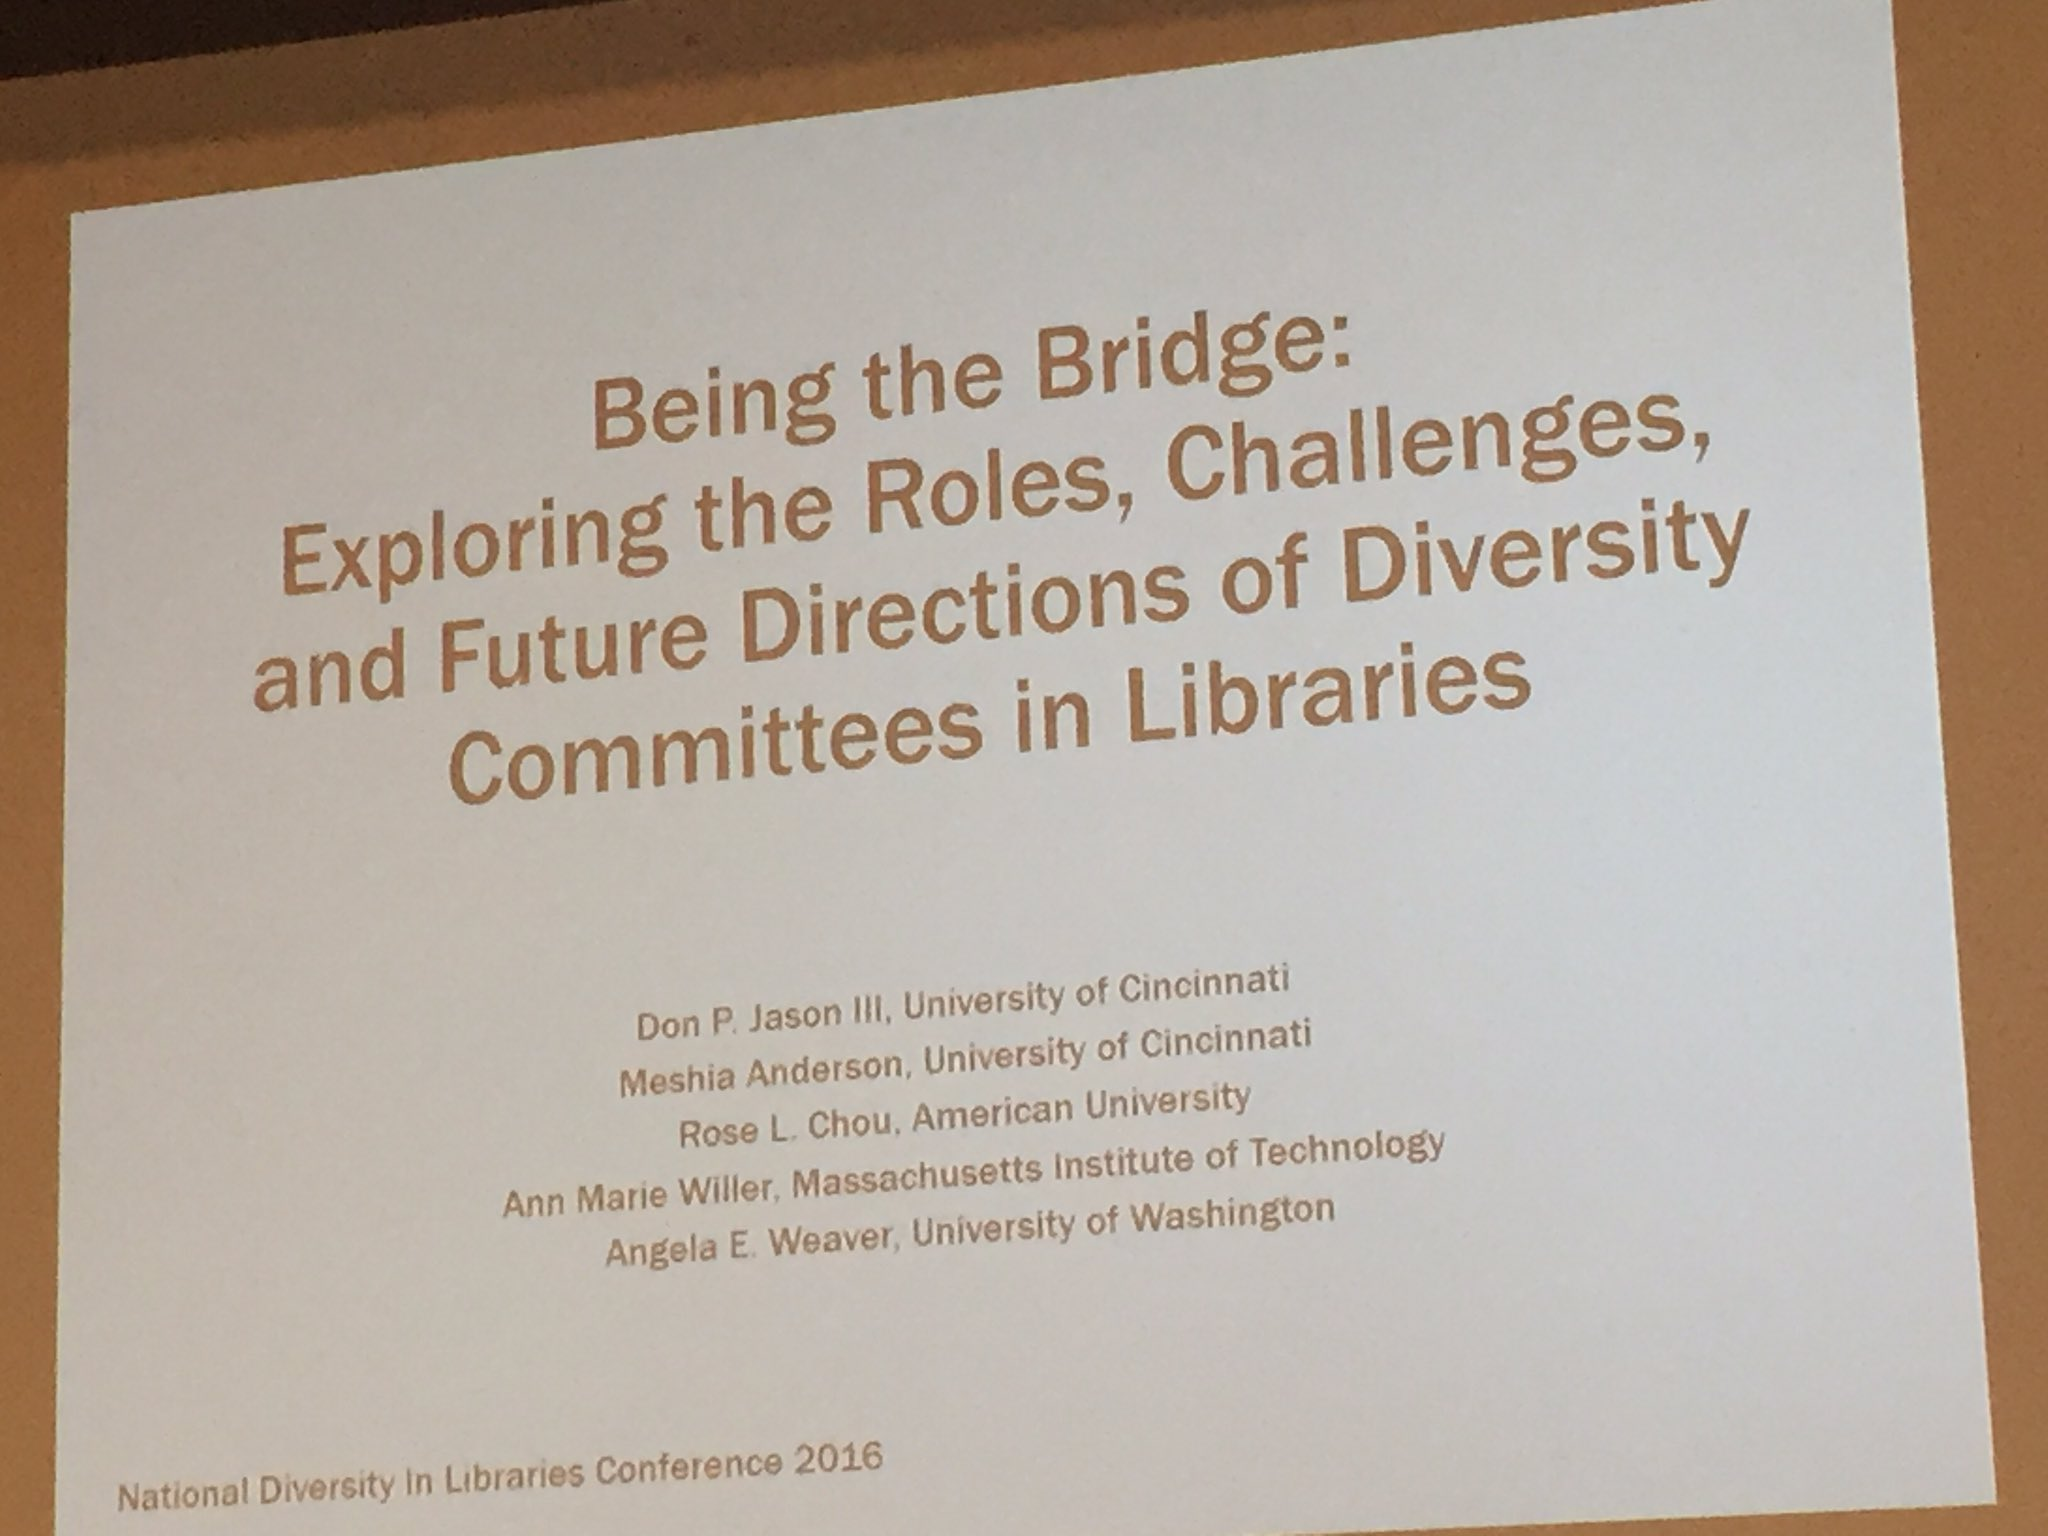 Excited about this first session as I'm increasingly interested in residency programs and leadership. #NDLC16 https://t.co/PO29qofXIm